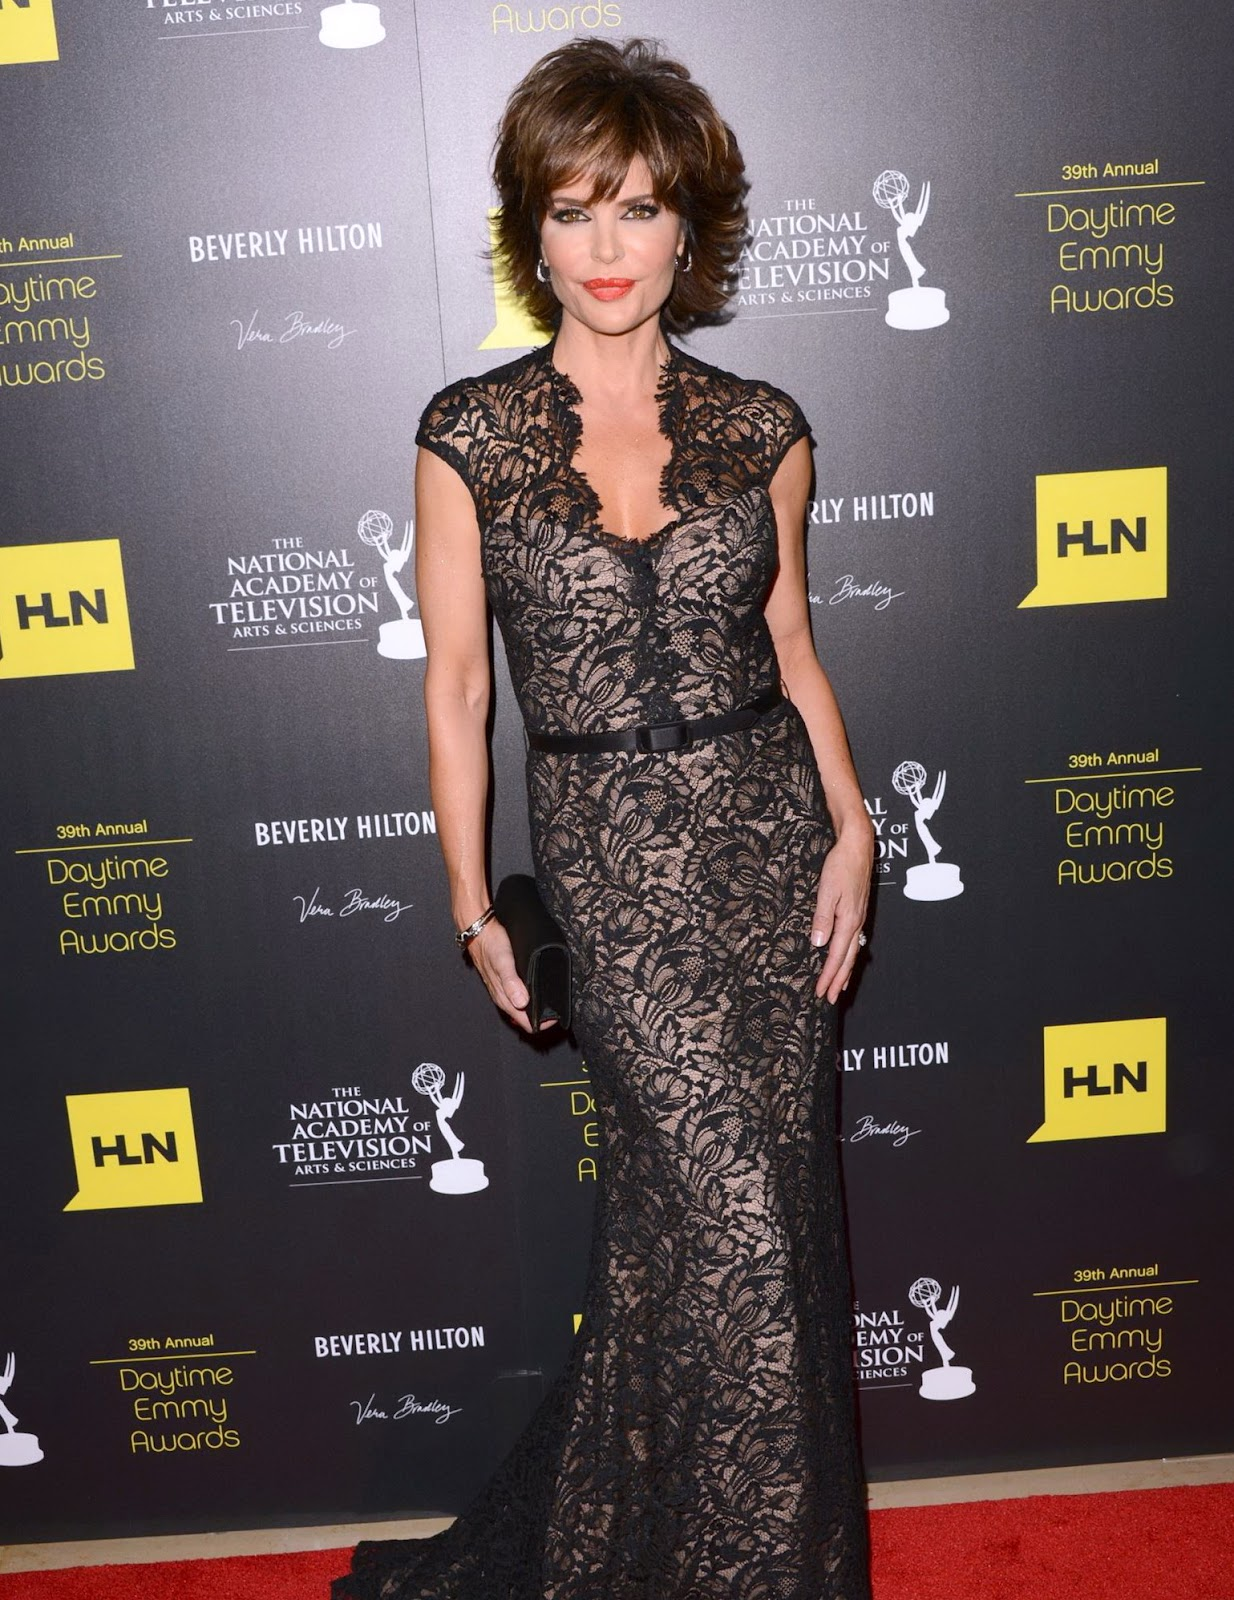 Lisa Rinna - Black Lace Gown | Just FAB Celebs